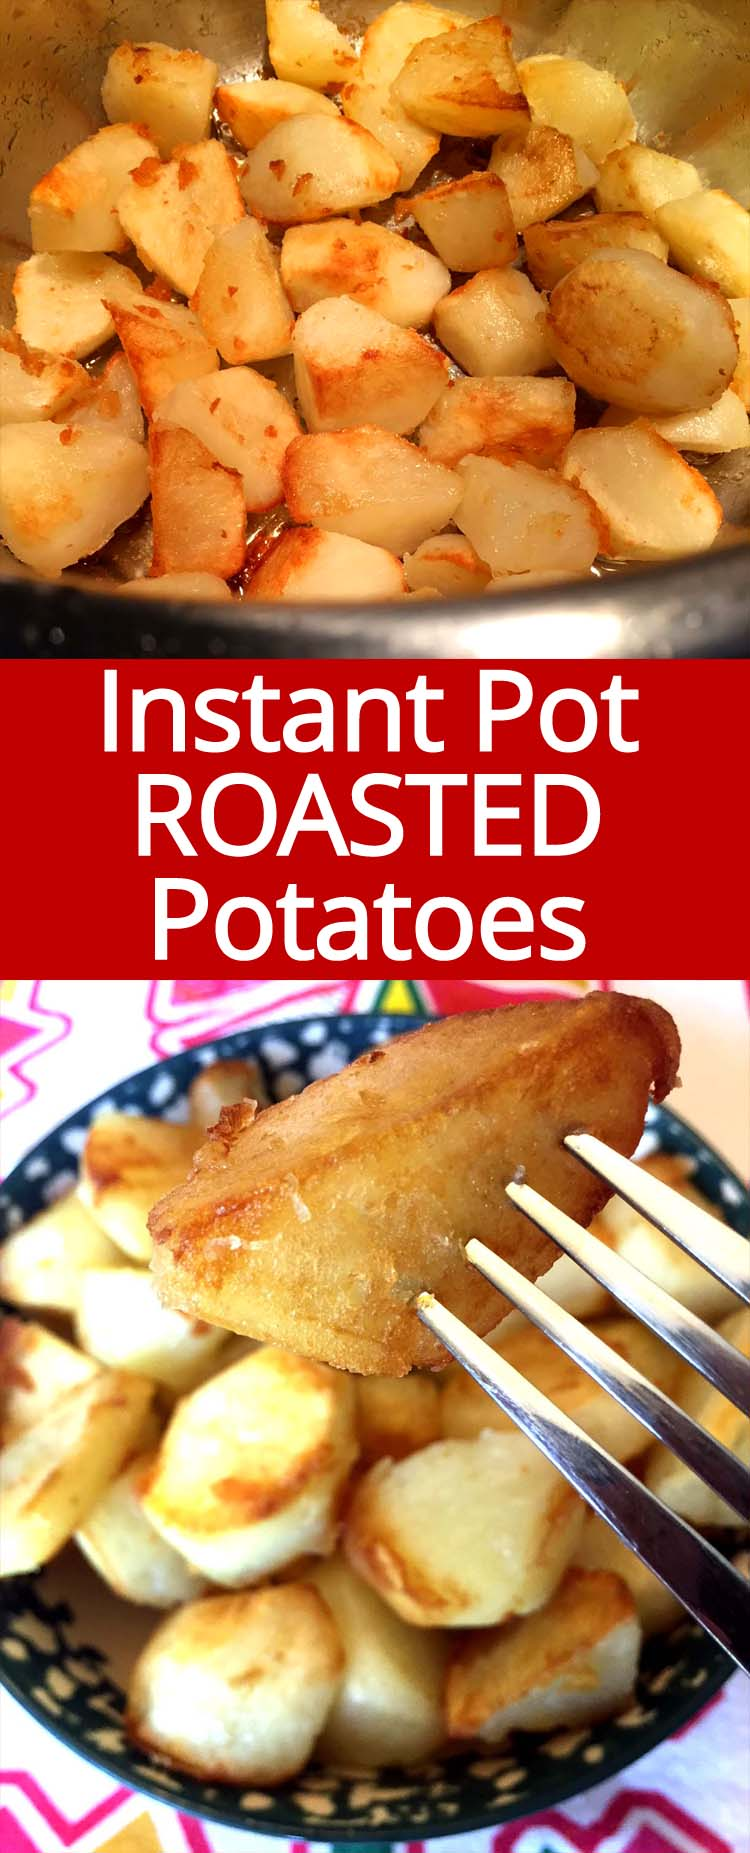 These Instant Pot roasted potatoes are amazing! It's 4 times faster than roasted them in the oven! Instant Pot is a game changer! We love these roasted potatoes!